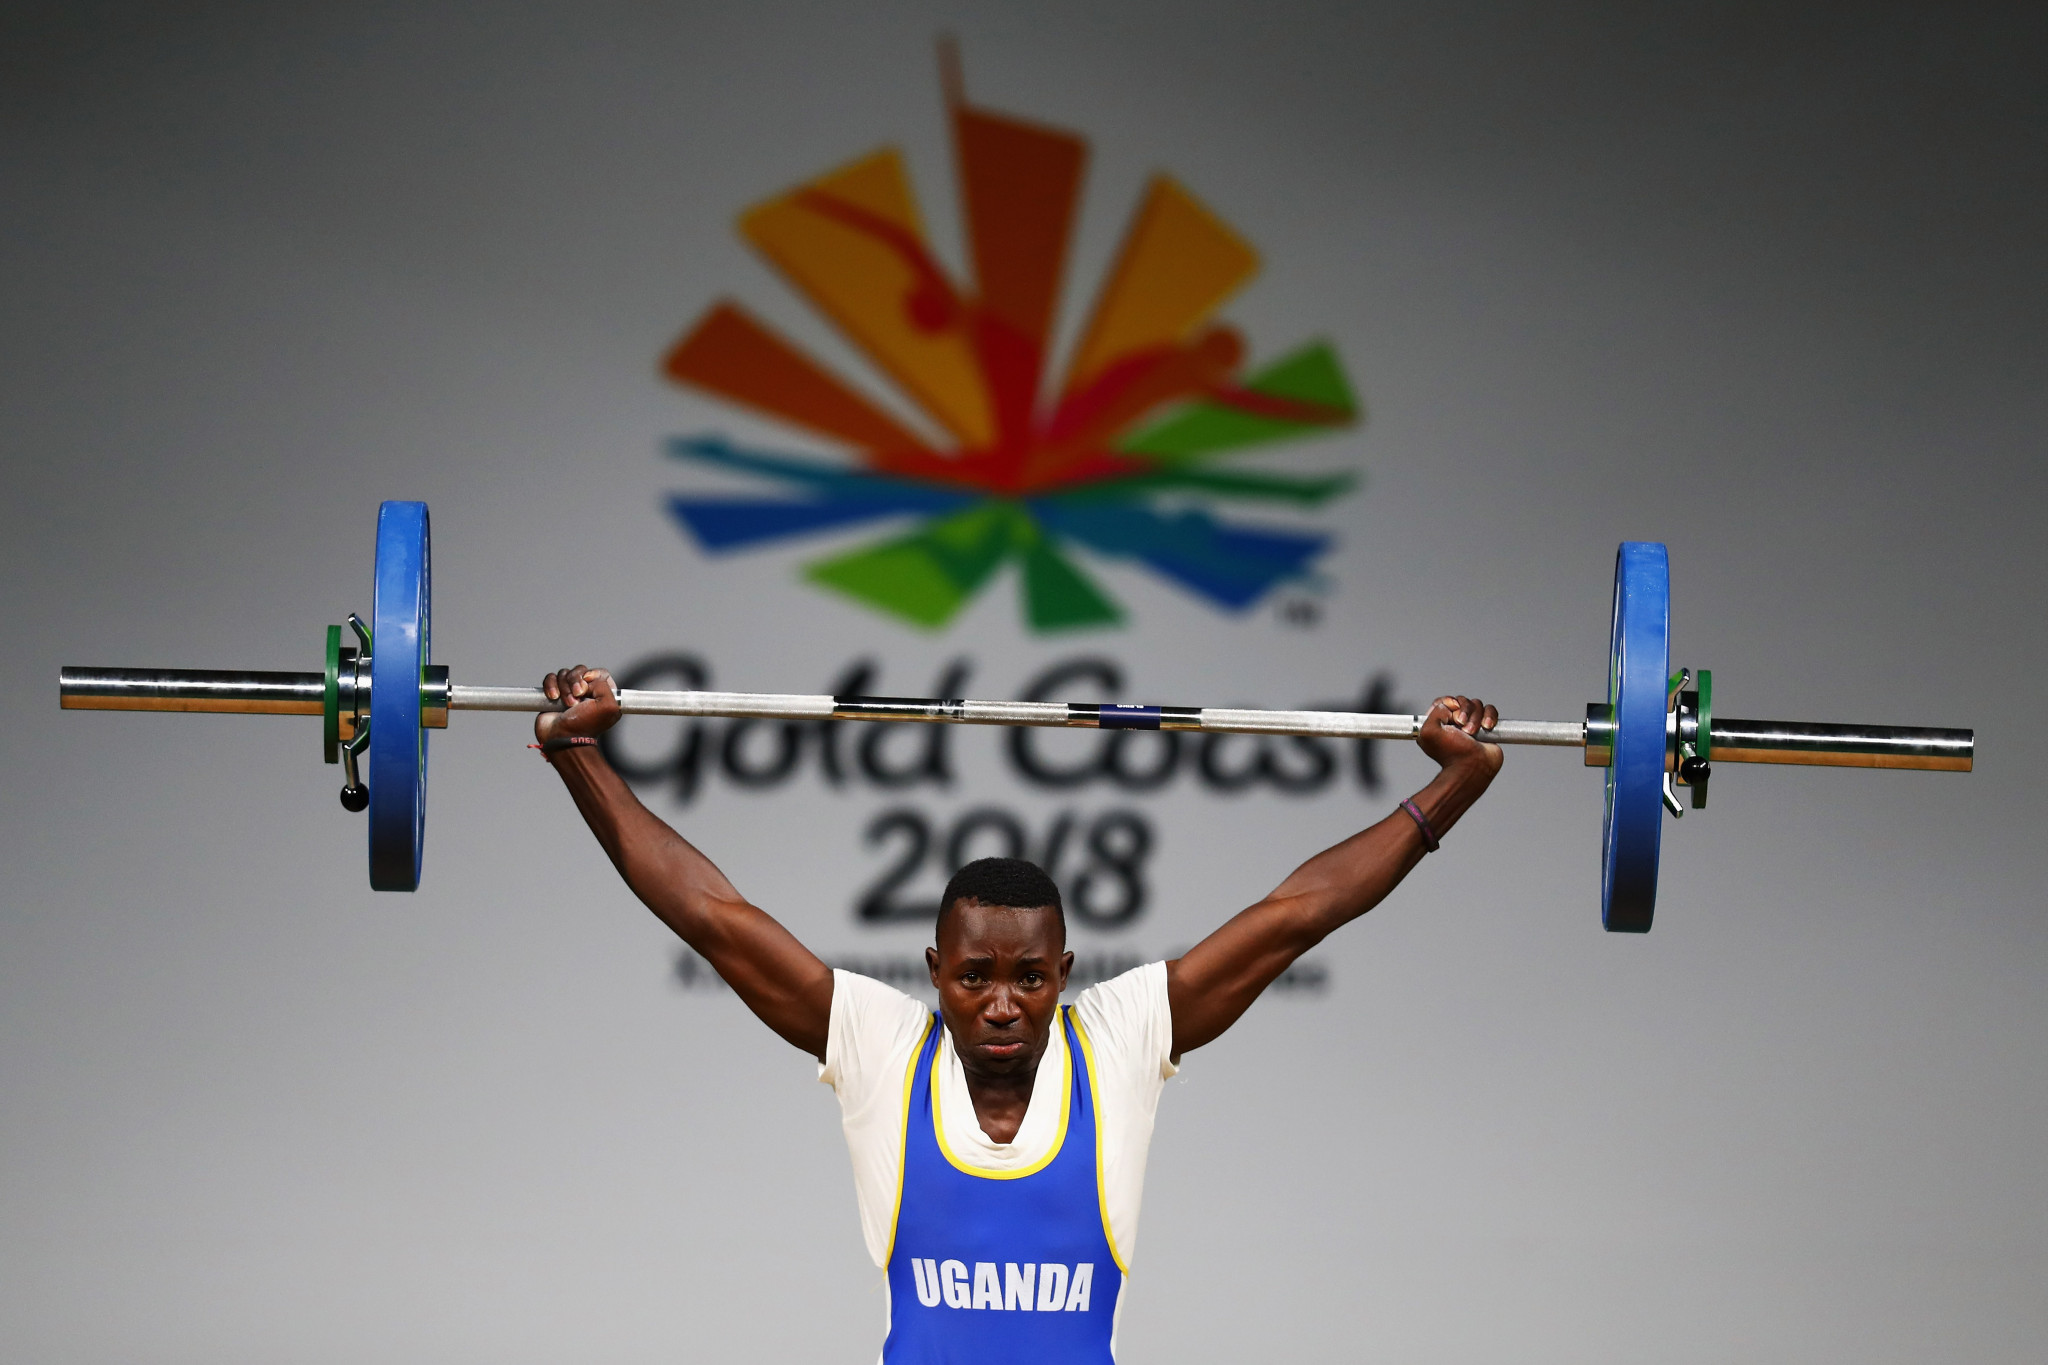 Ugandan weightlifter reported missing from Tokyo 2020 training camp